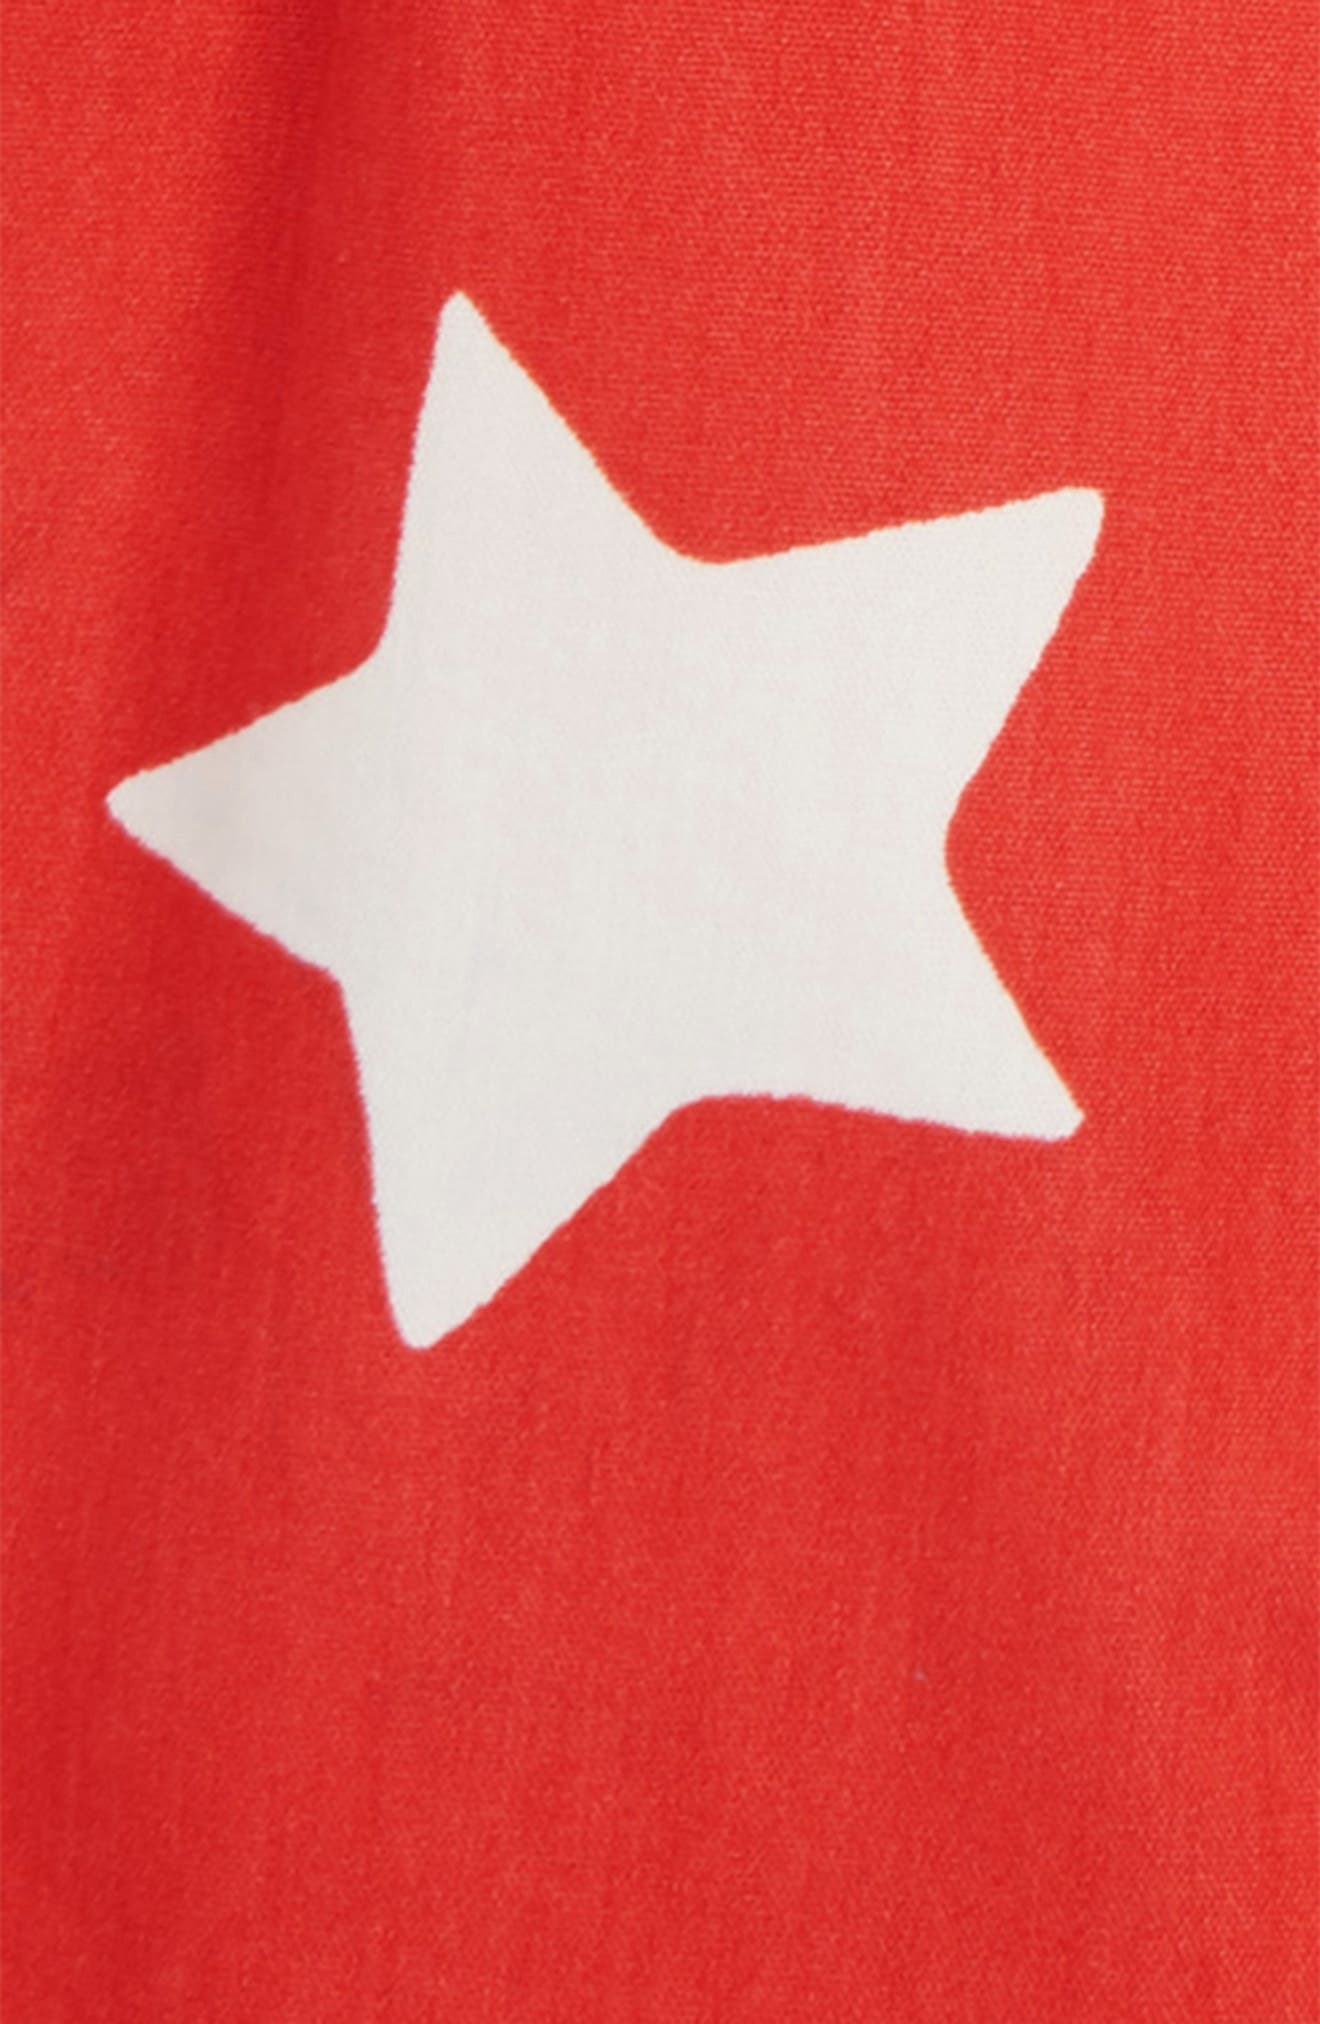 Star Adventure Shorts,                             Alternate thumbnail 2, color,                             BEAM RED/ ECRU STAR